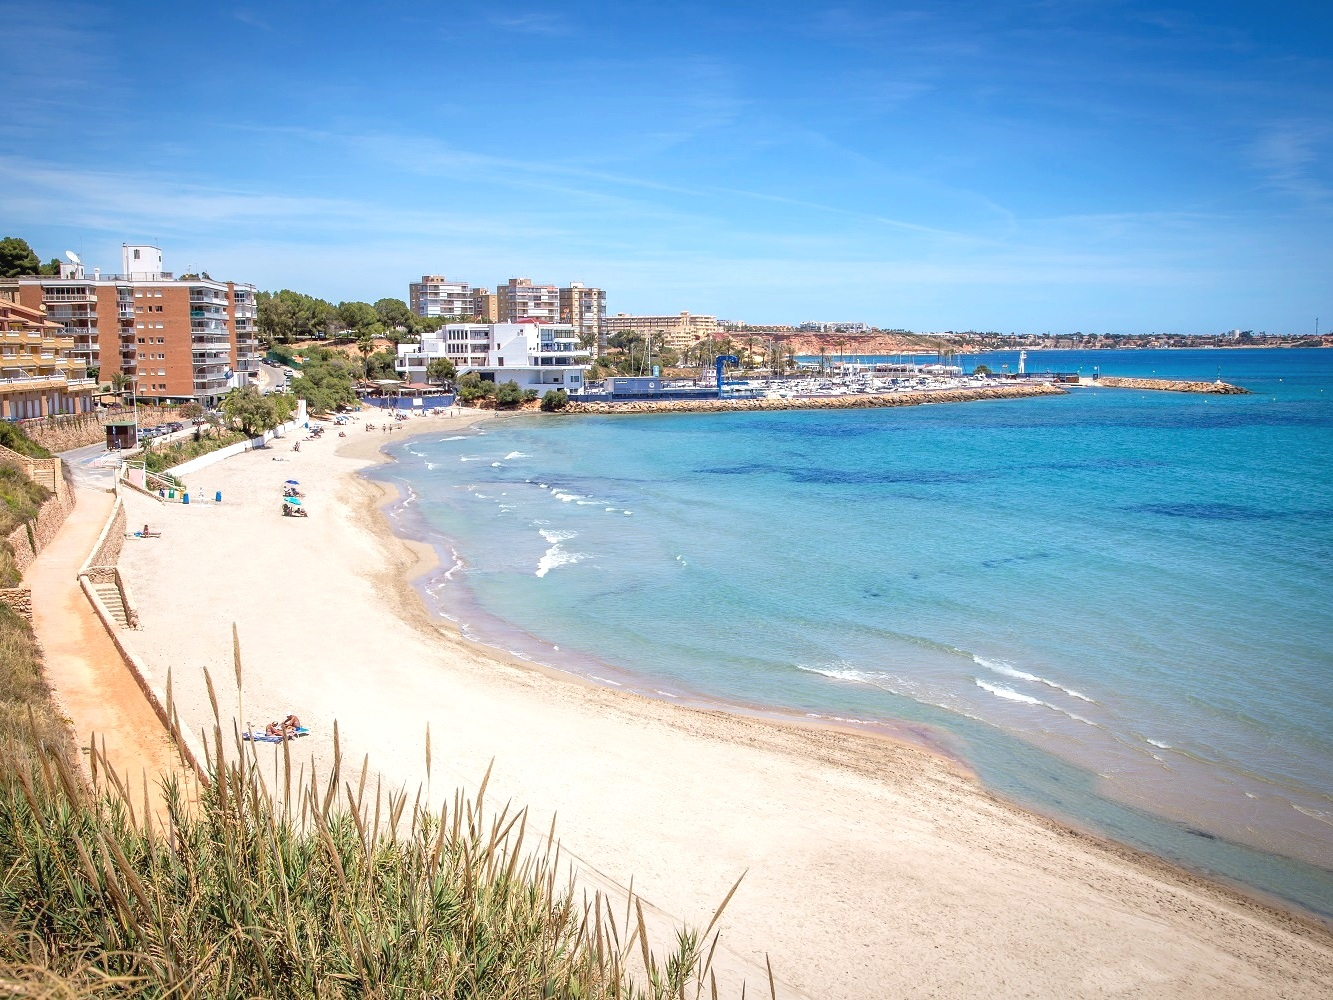 Orihuela Barranco y Rubio - Including a lifeguard tower and easy access parking spots, this beach has fine sand and a few great restaurants & bars nearby.